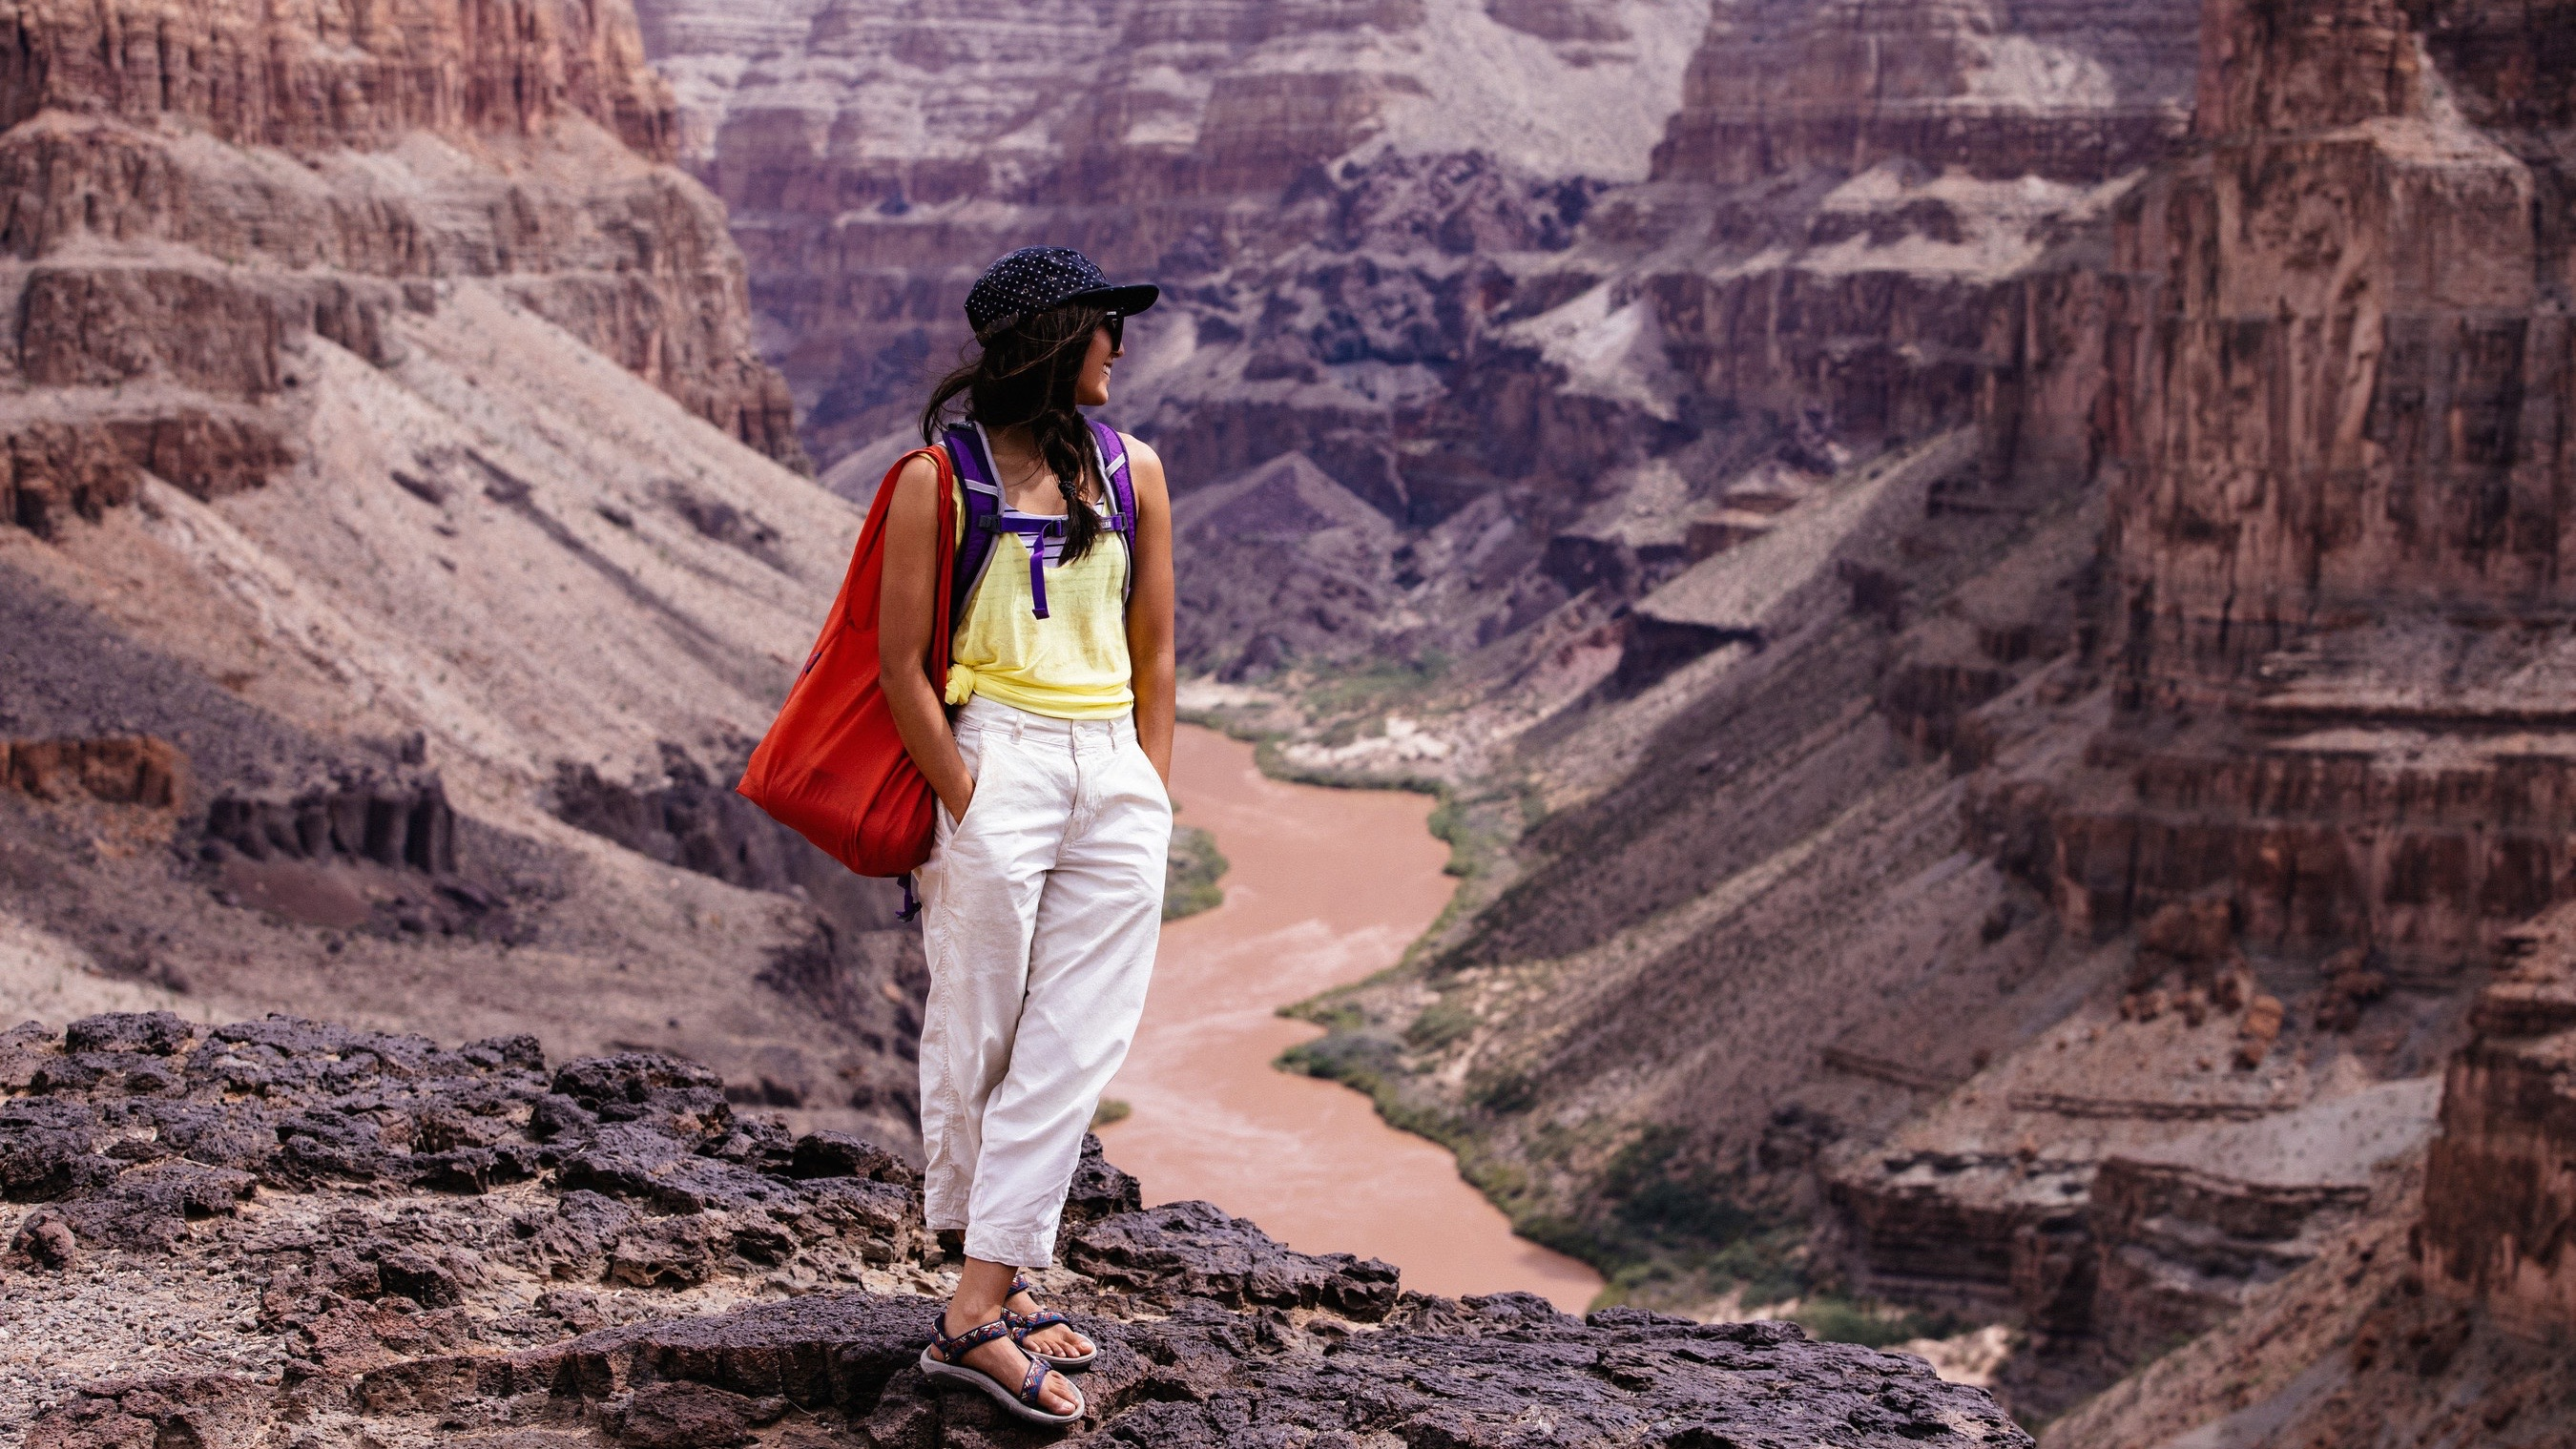 Teva Born in the Canyon Campaign